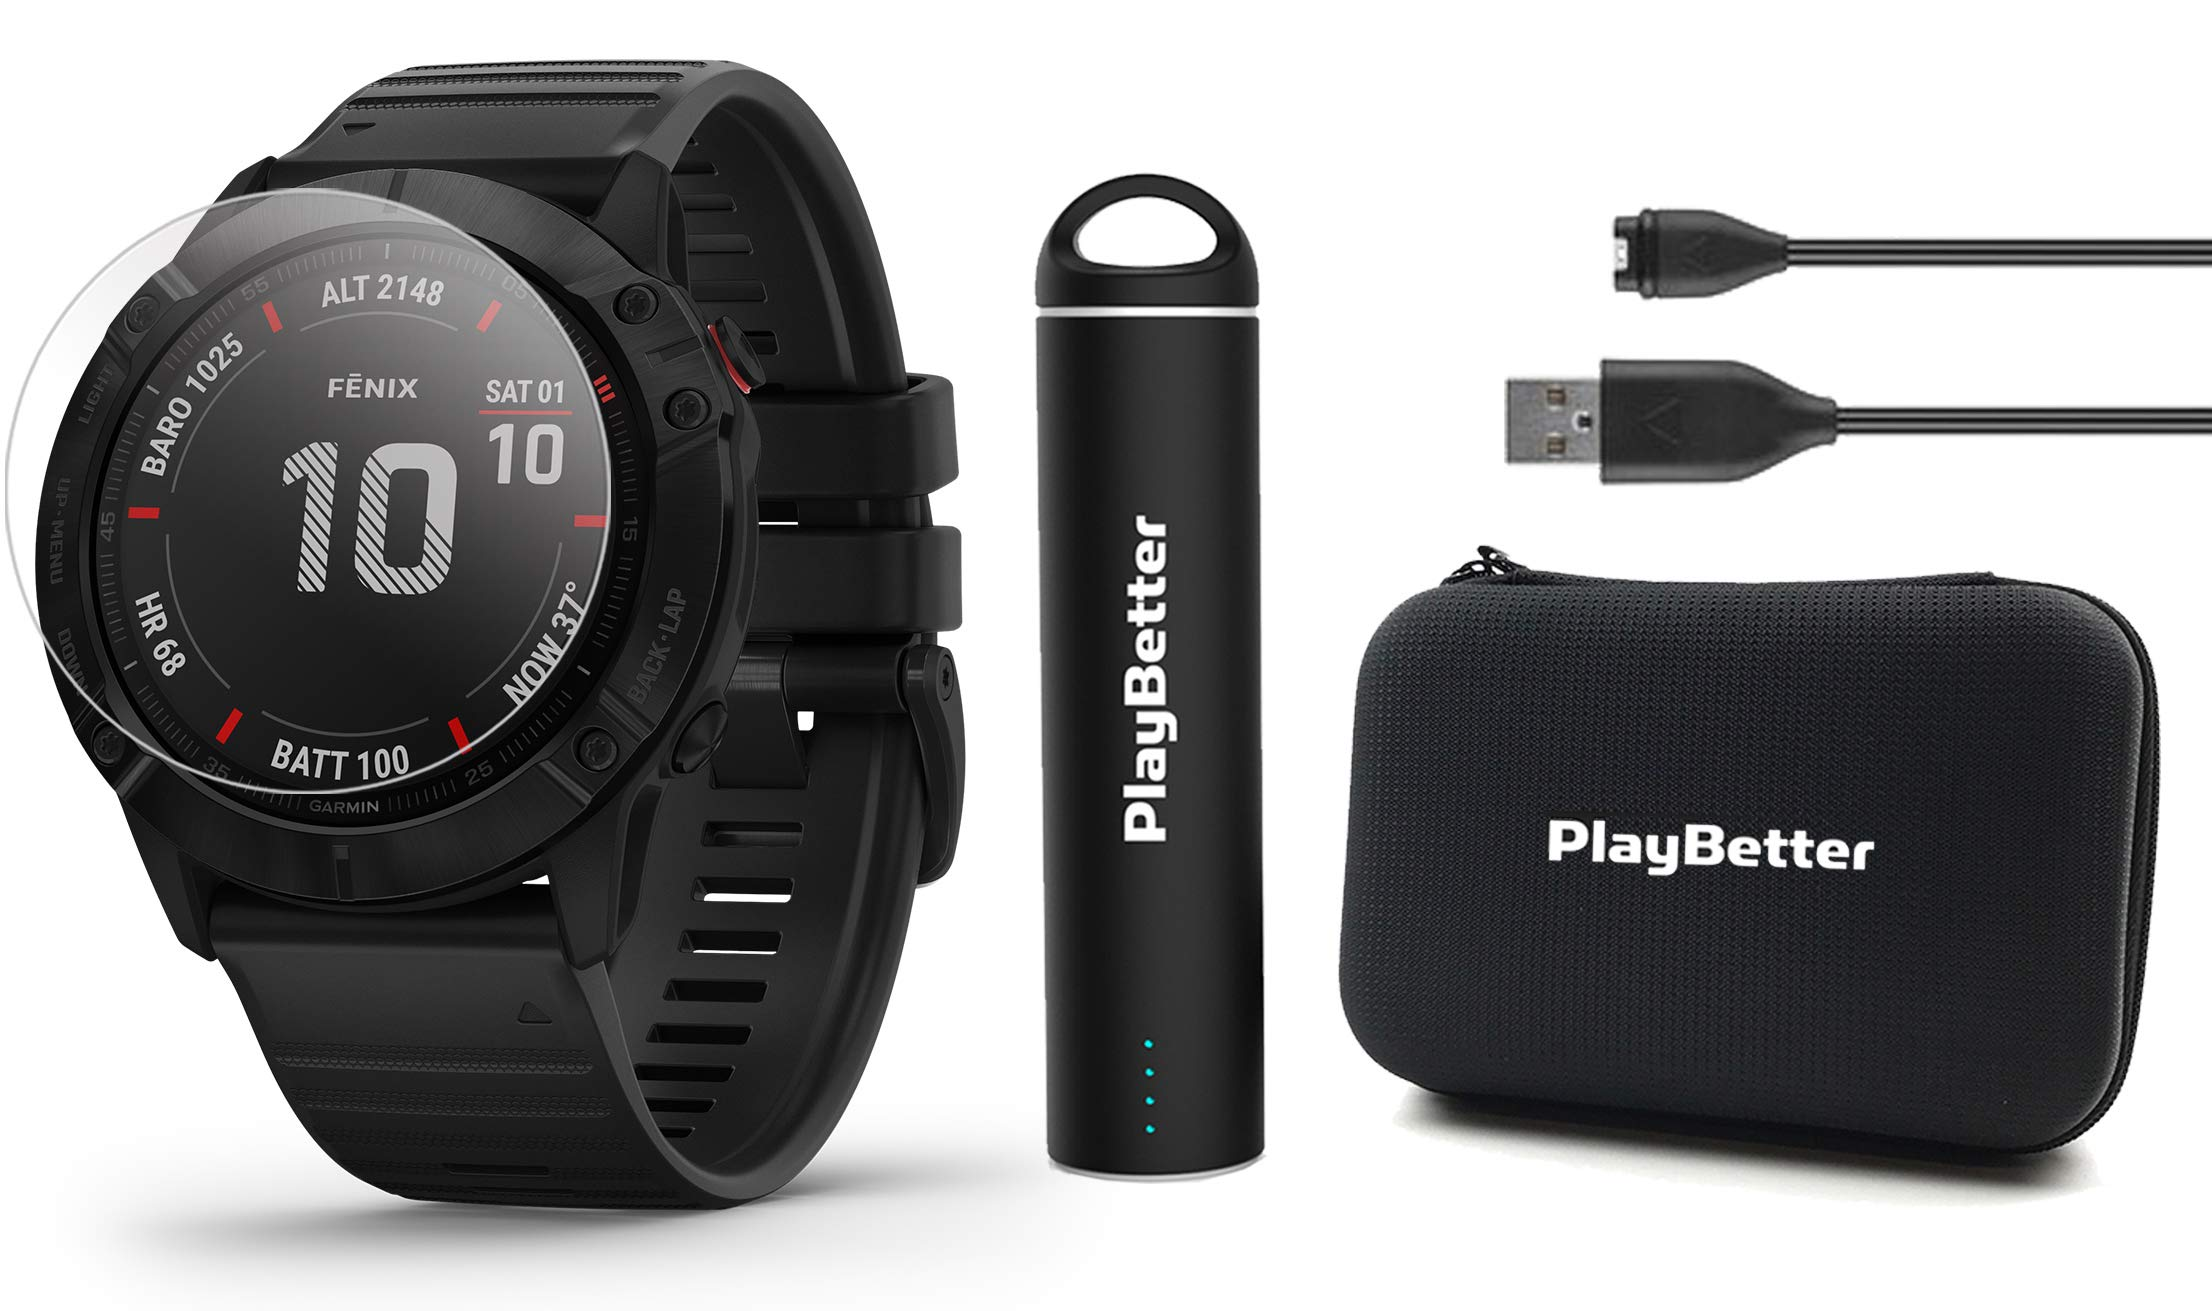 Garmin Fenix 6X Pro (Black with Black Band) Power Bundle with HD Screen Protectors, PlayBetter Portable Charger & Protective Hard Case | 2019 | PulseOx, ClimbPro, Maps, PacePro, Spotify & Music by PlayBetter